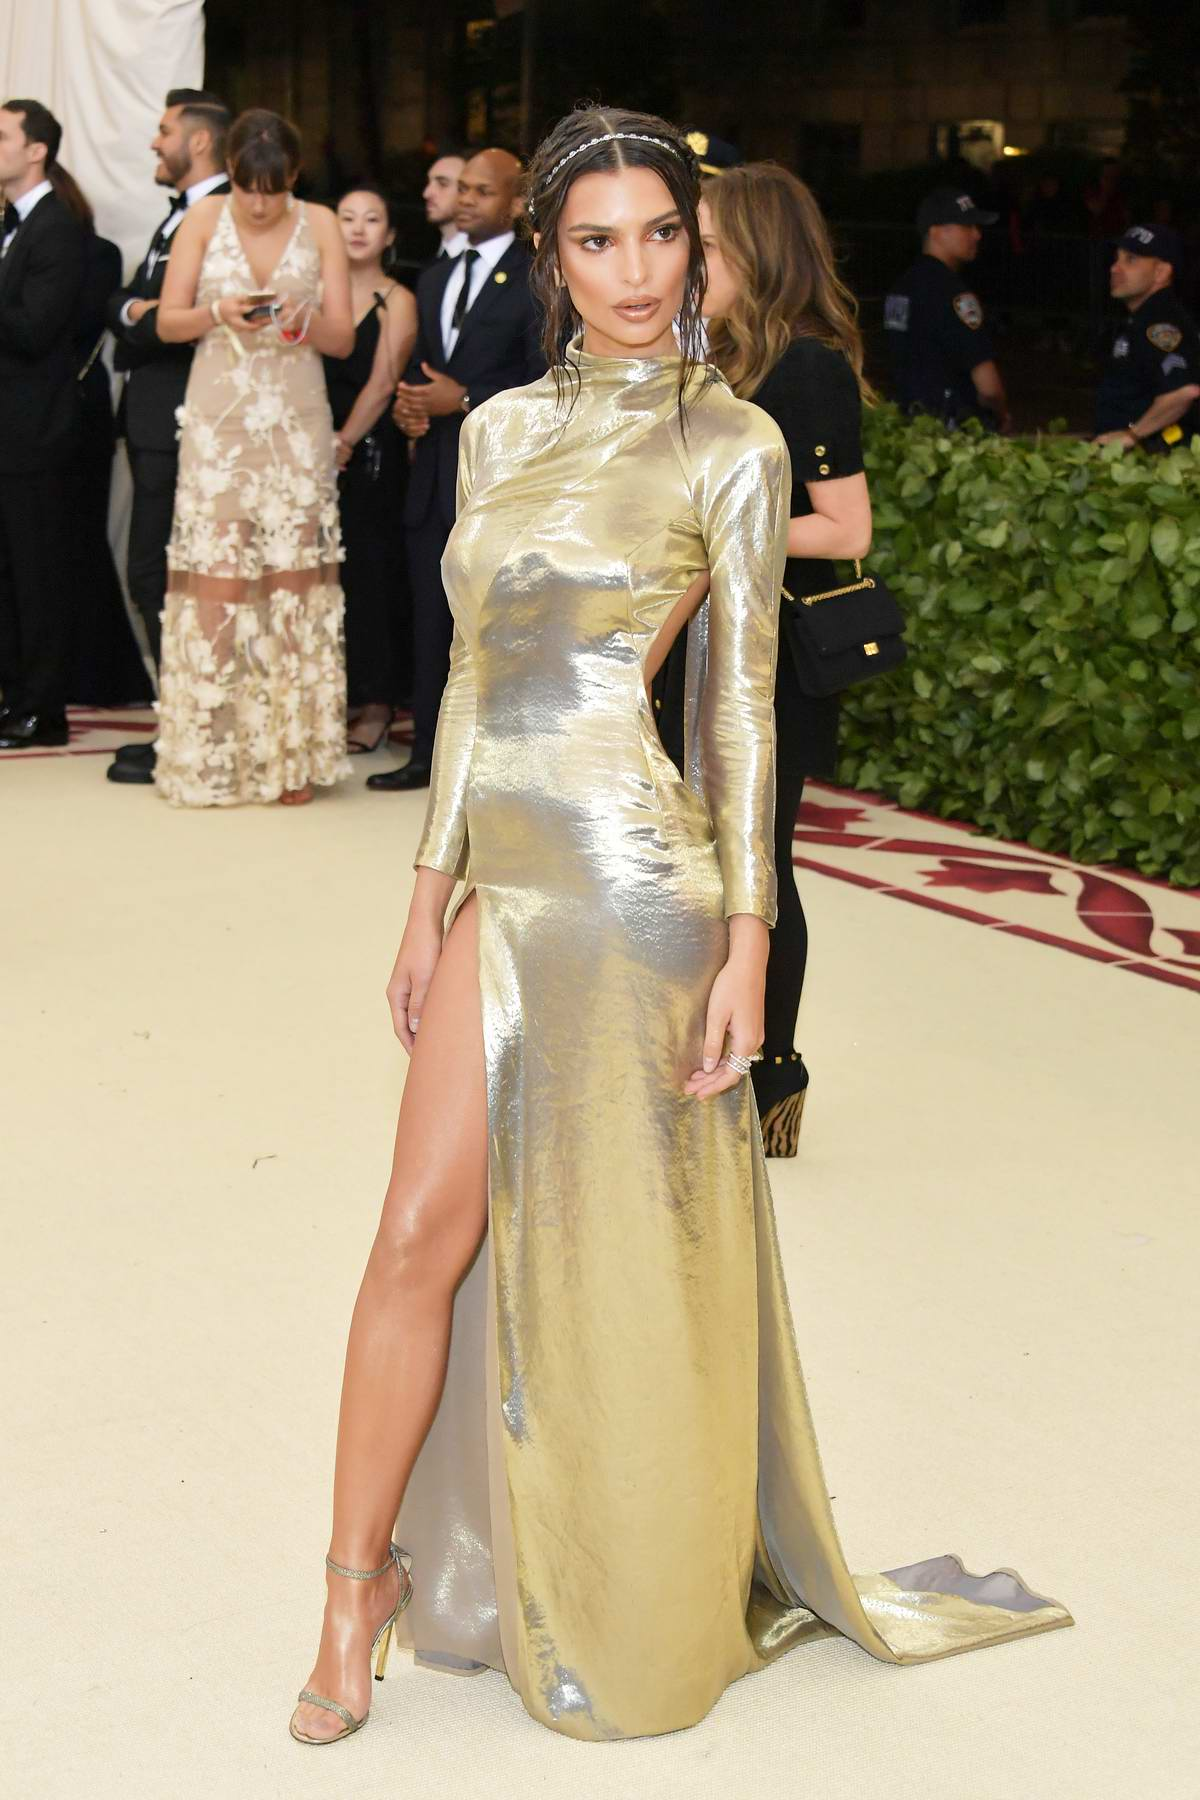 Emily Ratajkowski attends The Costume Institute Benefit Gala (MET Gala 2018) at Metropolitan Museum of Art in New York City